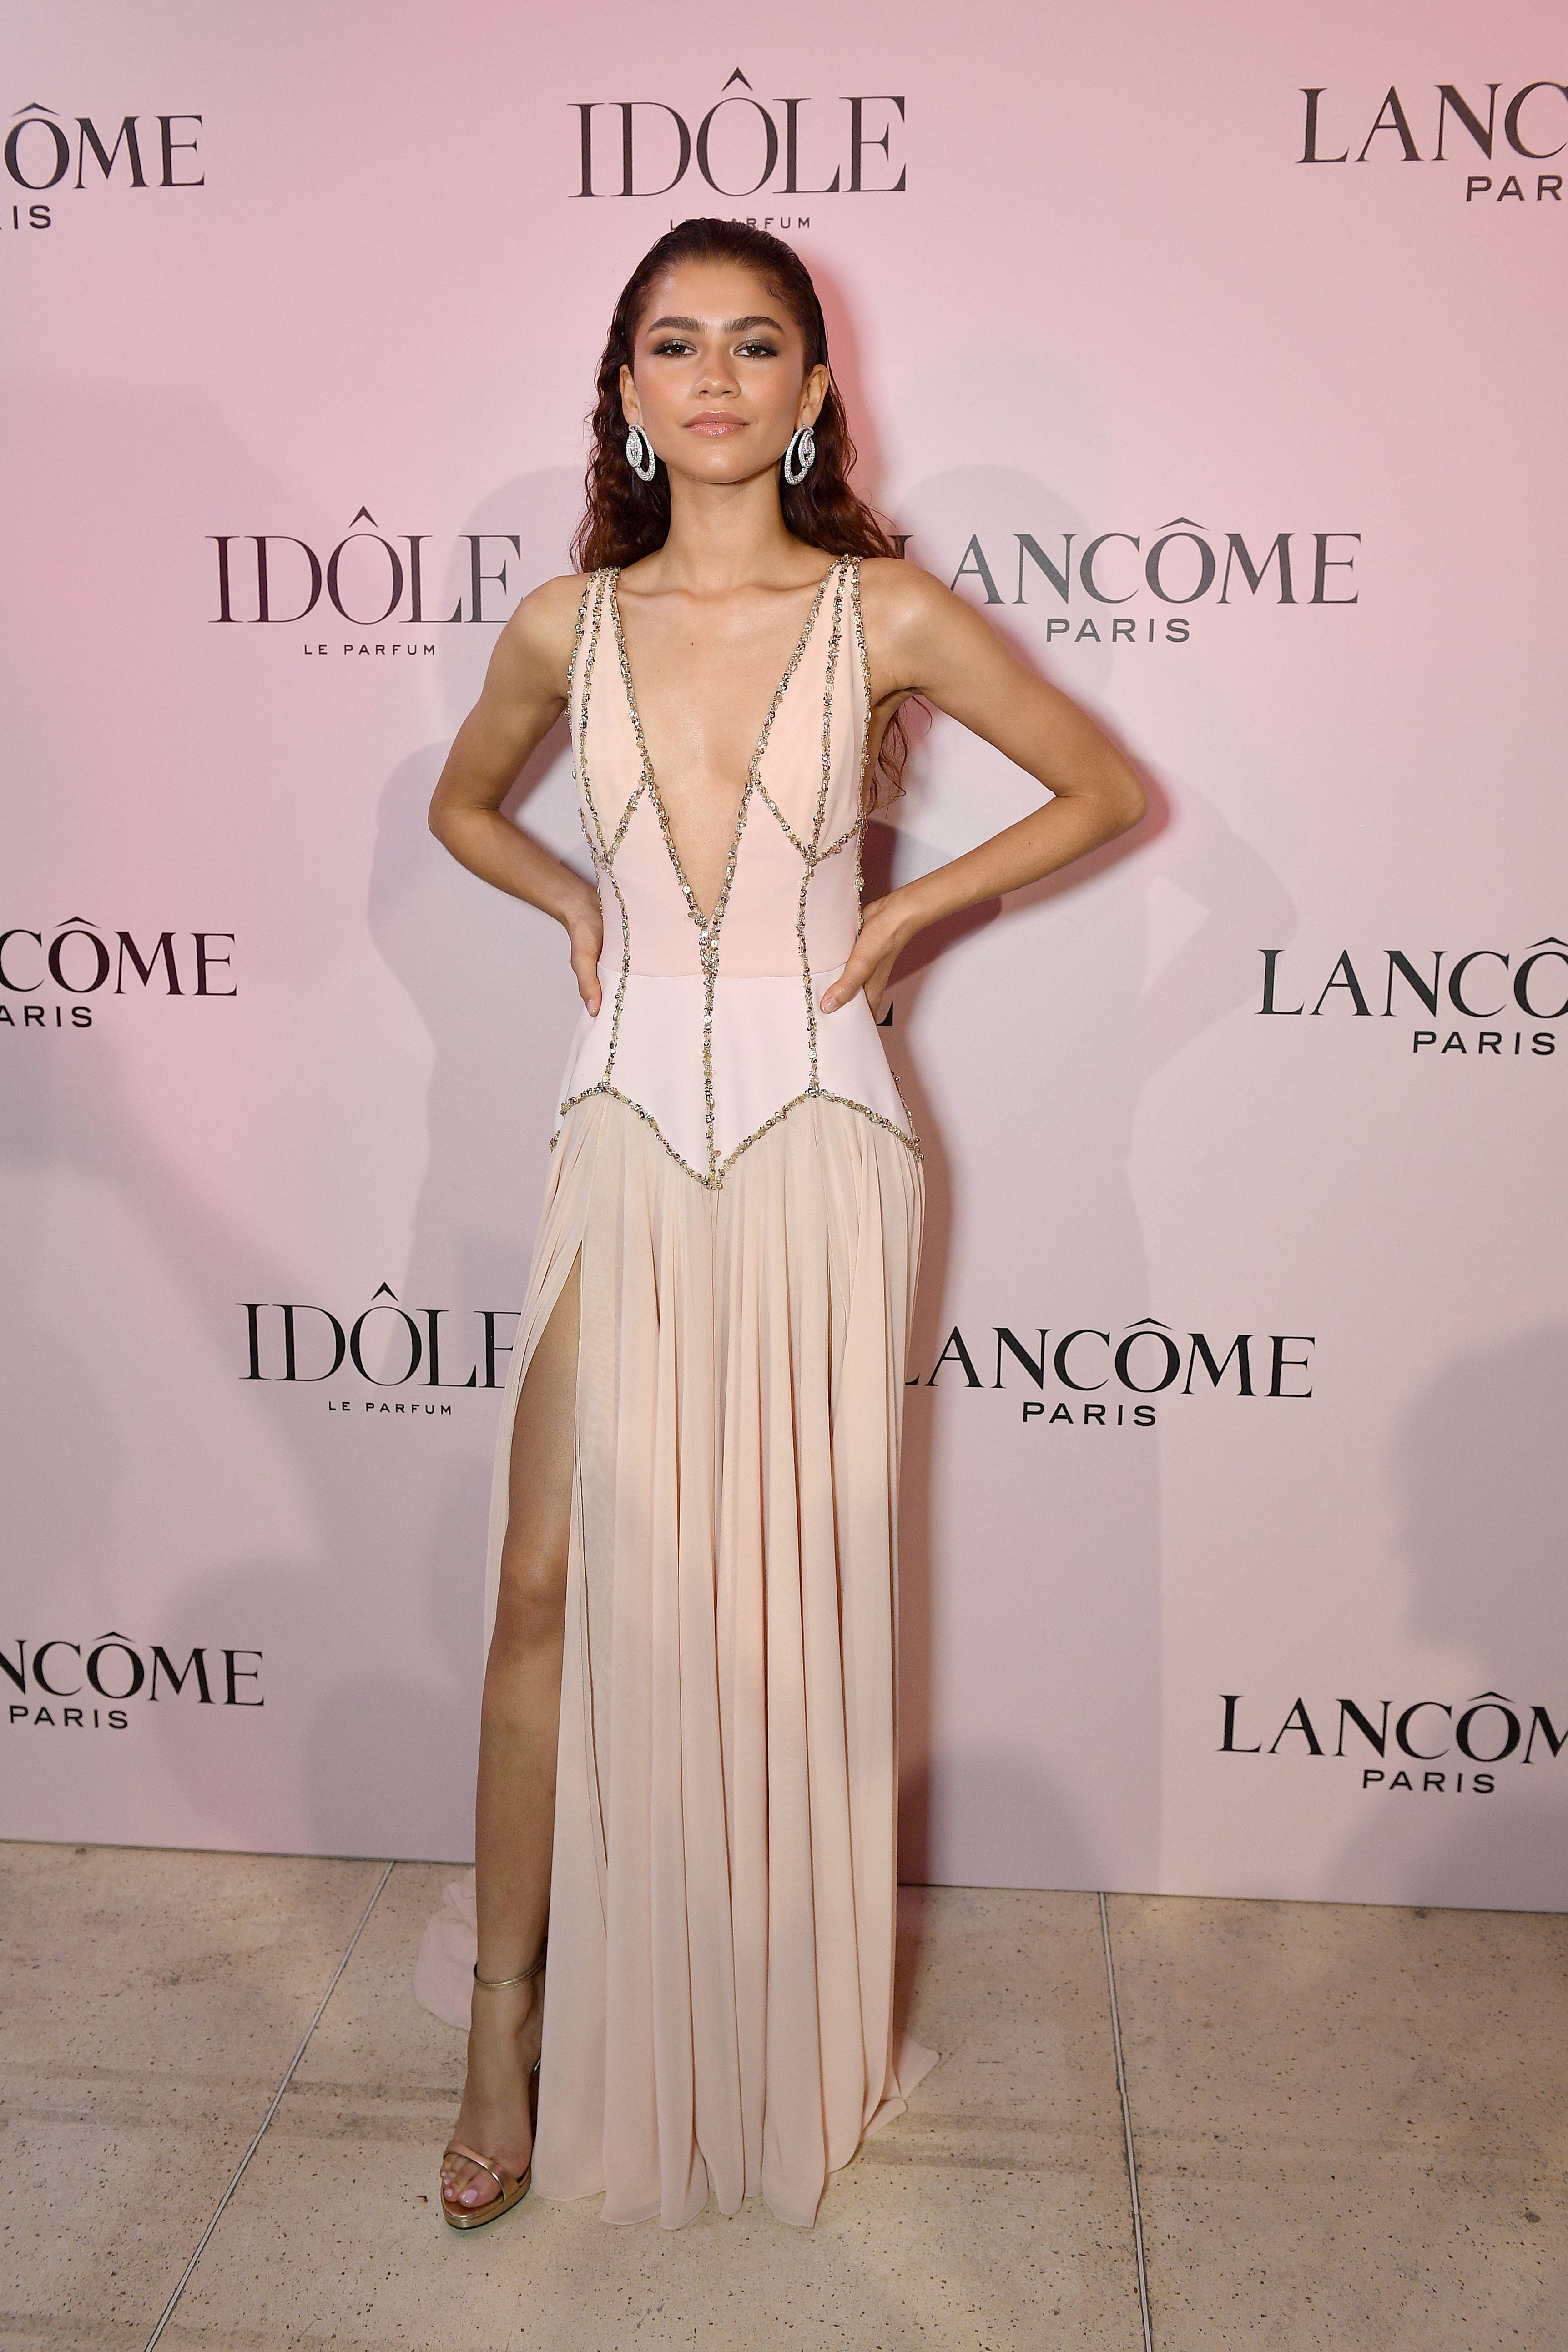 """Zendaya Glows As The Face OfLancôme Idôle - In Paris, Zendaya made quite a debut as the face of the new Lancôme """"Idôle"""" fragrance on Tuesday (June 2). Styled by Luxury Law, the 22-year-old actress looked stunning in a blush-pink Georges Hobeika gown with bold plunging neckline.(Photo: Kristy Sparow/Getty Images for Lancome)"""